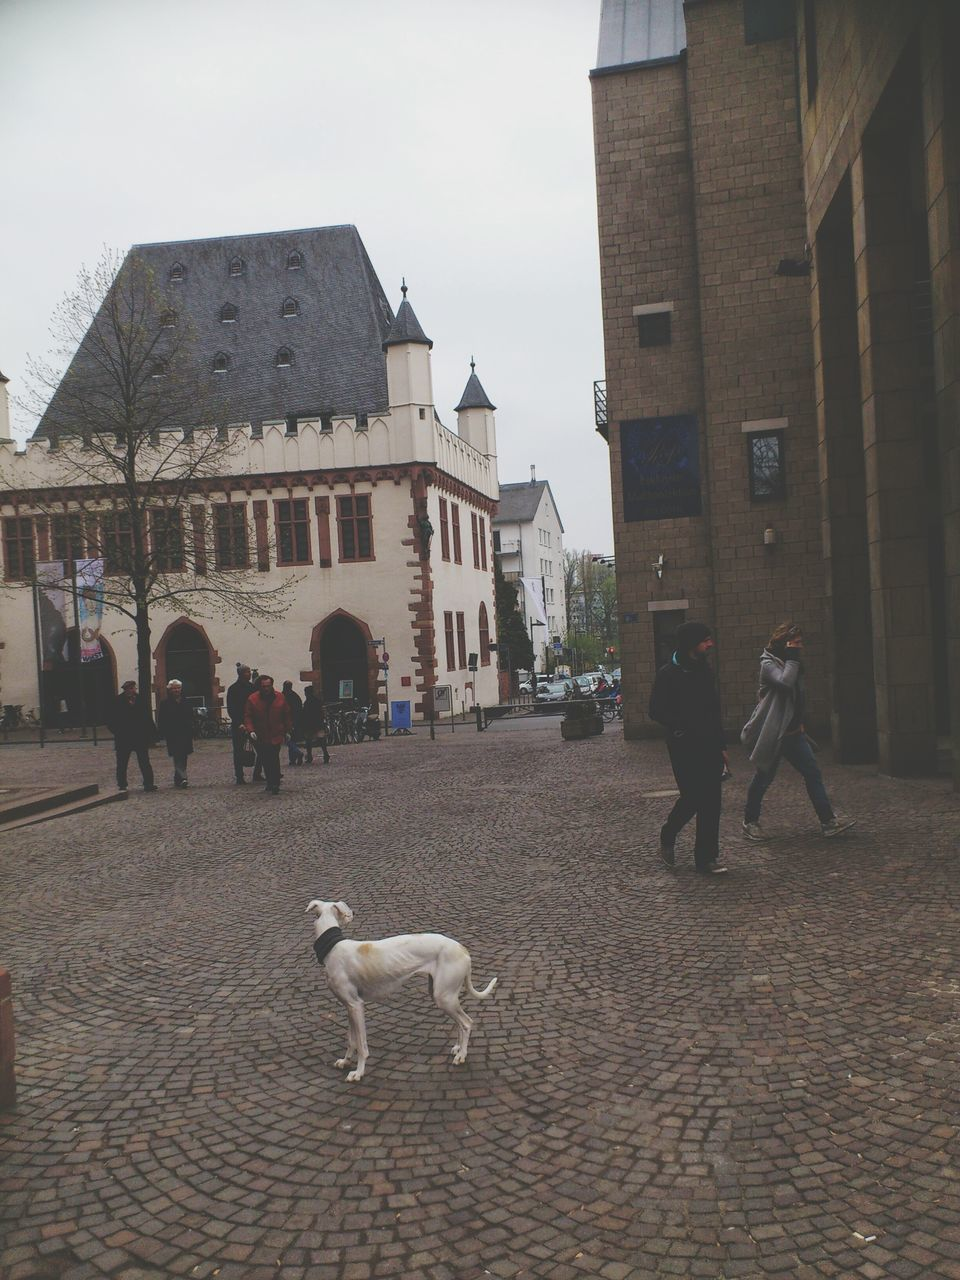 walking, dog, architecture, building exterior, built structure, pets, domestic animals, mammal, street, one animal, real people, men, outdoors, full length, women, dog lead, standing, day, group of people, city, sky, friendship, people